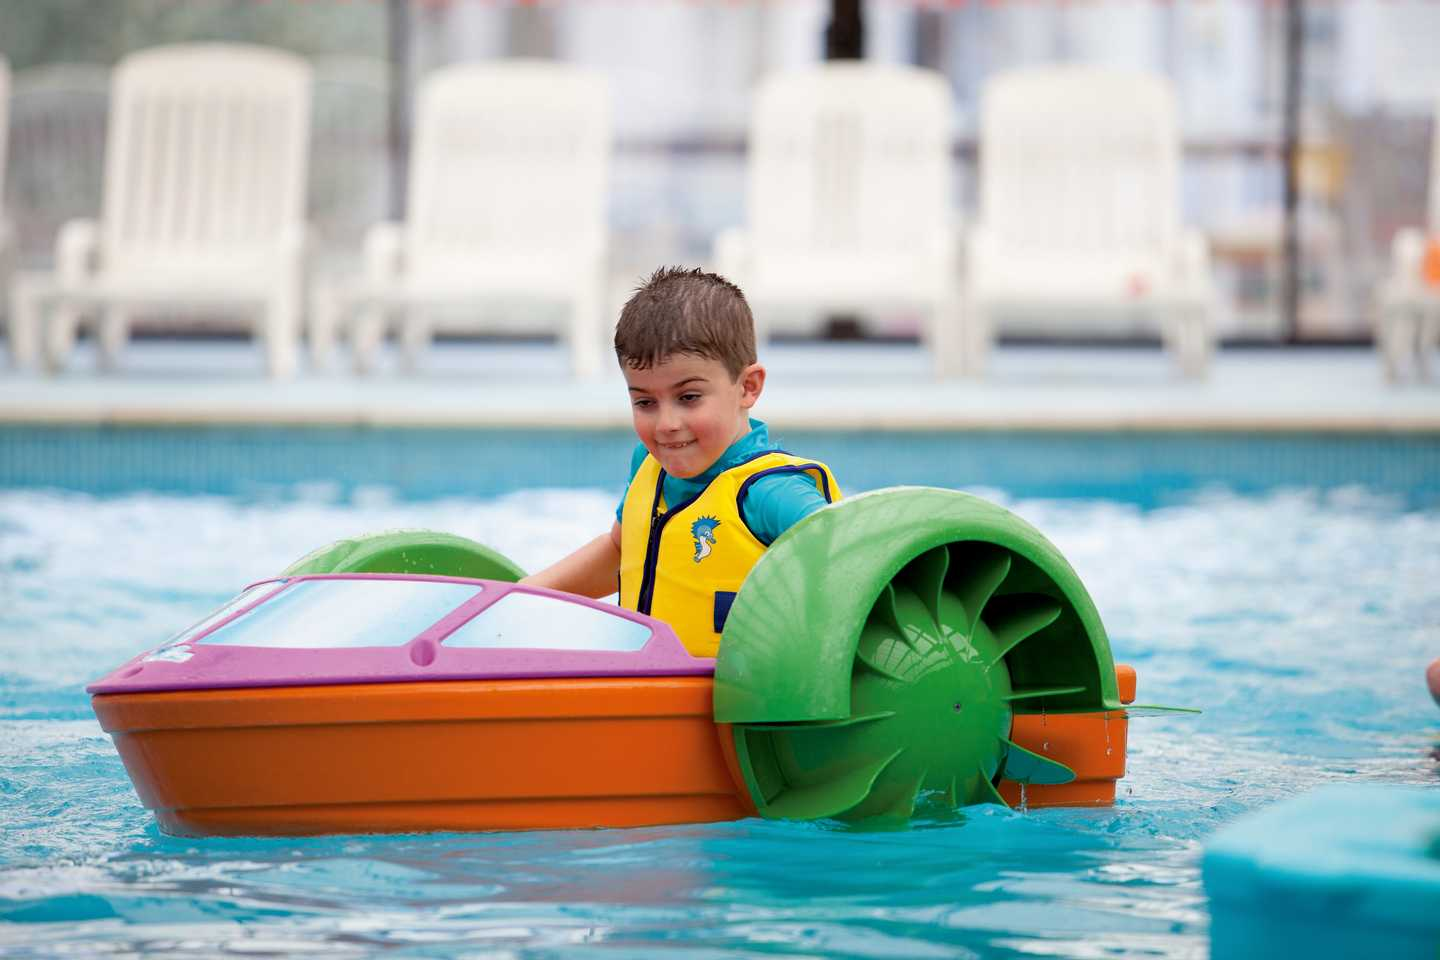 Child in an Aqua Paddler boat